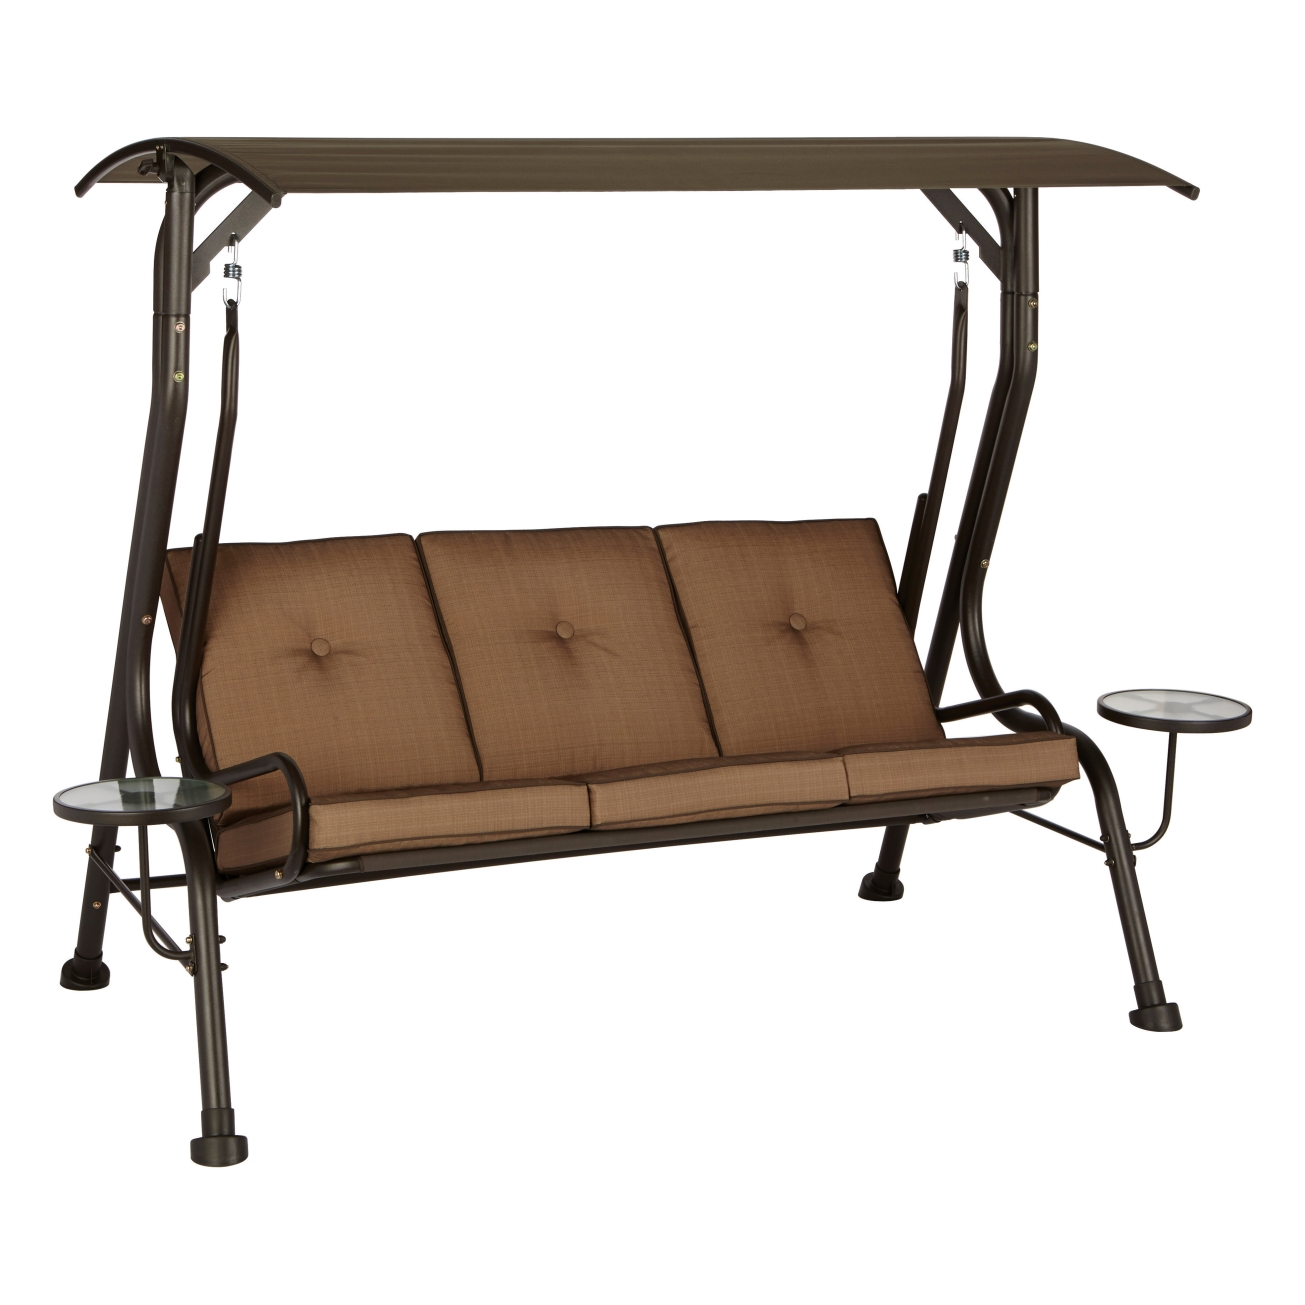 porch swings gliders outdoor and patio hardware swing with side tables living accents steel brown playground set daybed glider cushion covers suncast furniture calgary piece table